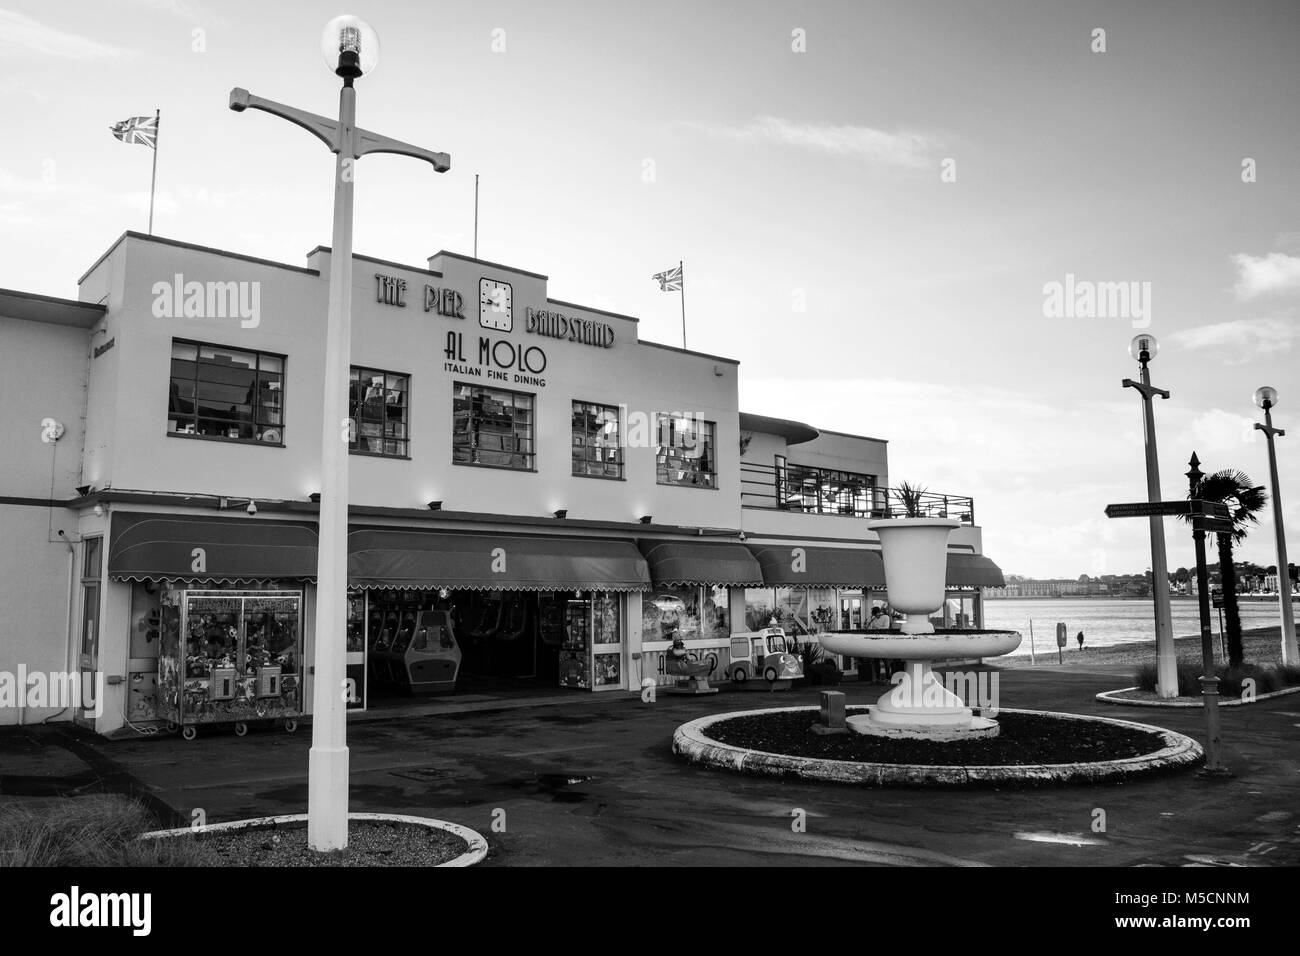 WEYMOUTH, UNITED KINGDOM - DECEMBER 26, 2017 - Front view of the 1920s Art Deco style arcade along the Esplanade, - Stock Image